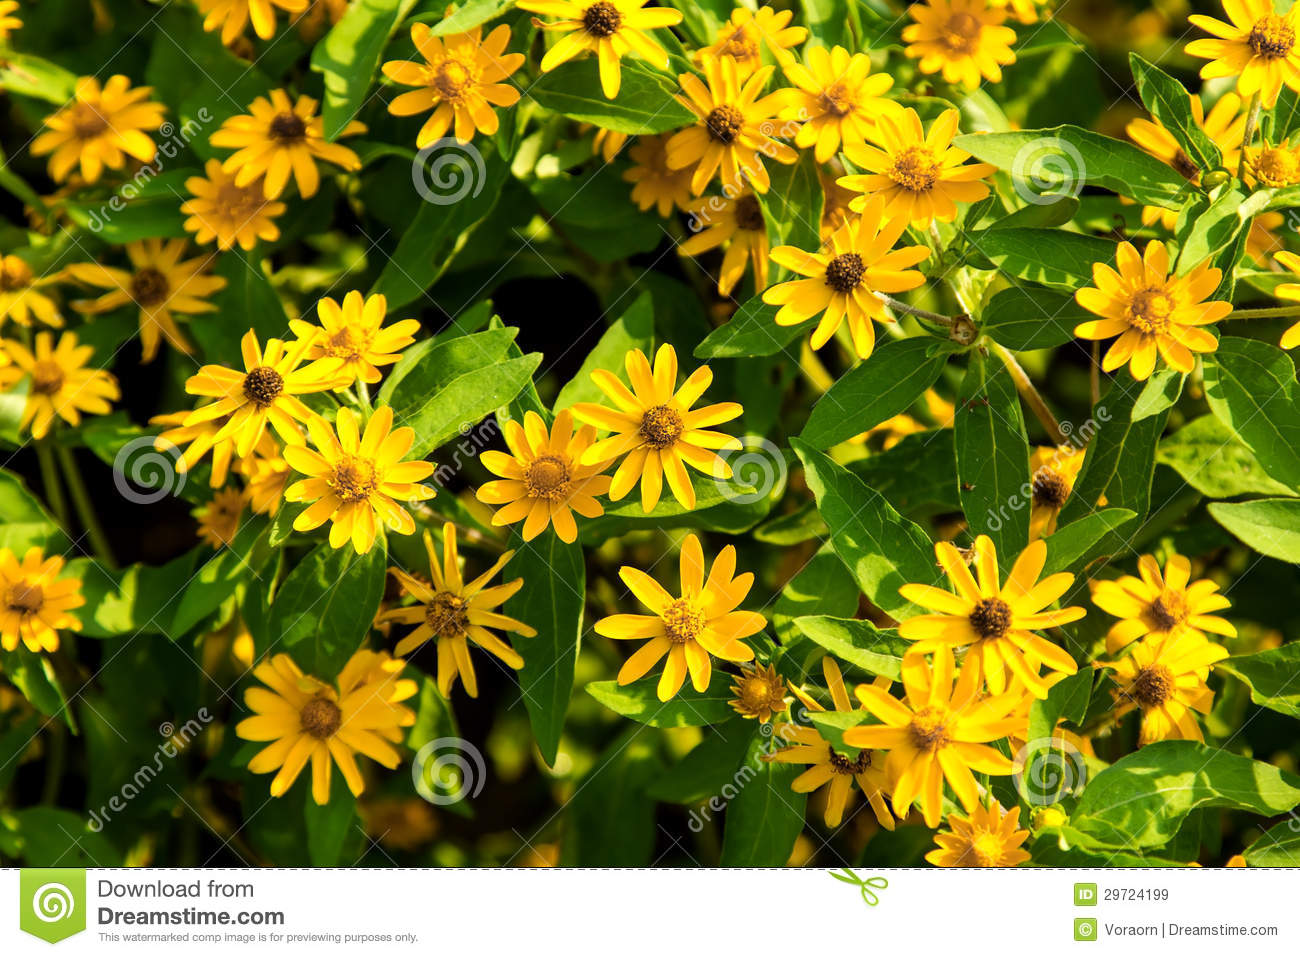 Little yellow flower stock image image of freshness 29724199 download little yellow flower stock image image of freshness 29724199 mightylinksfo